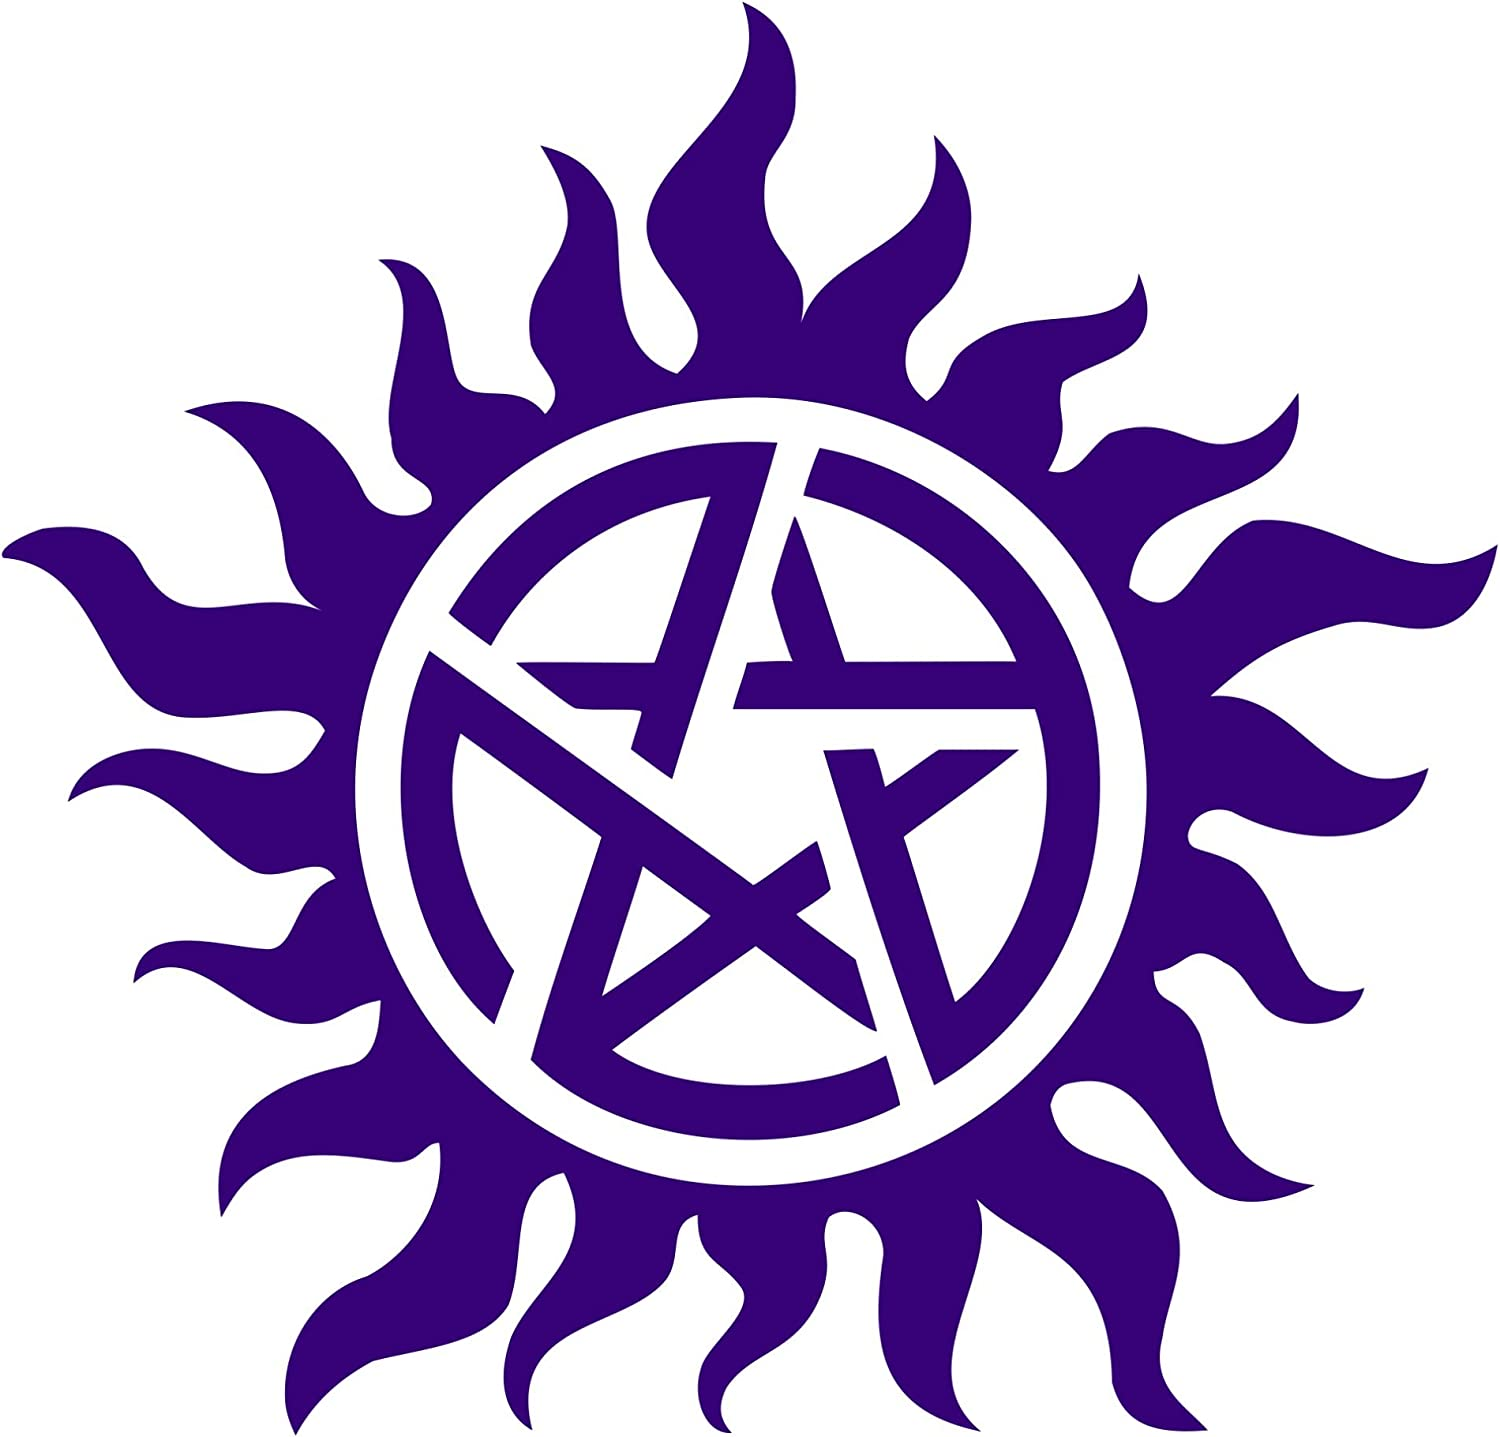 Supernatural die cut Vinyl Decal sticker Approx Anti-Posession Symbol dark purple 5 inches